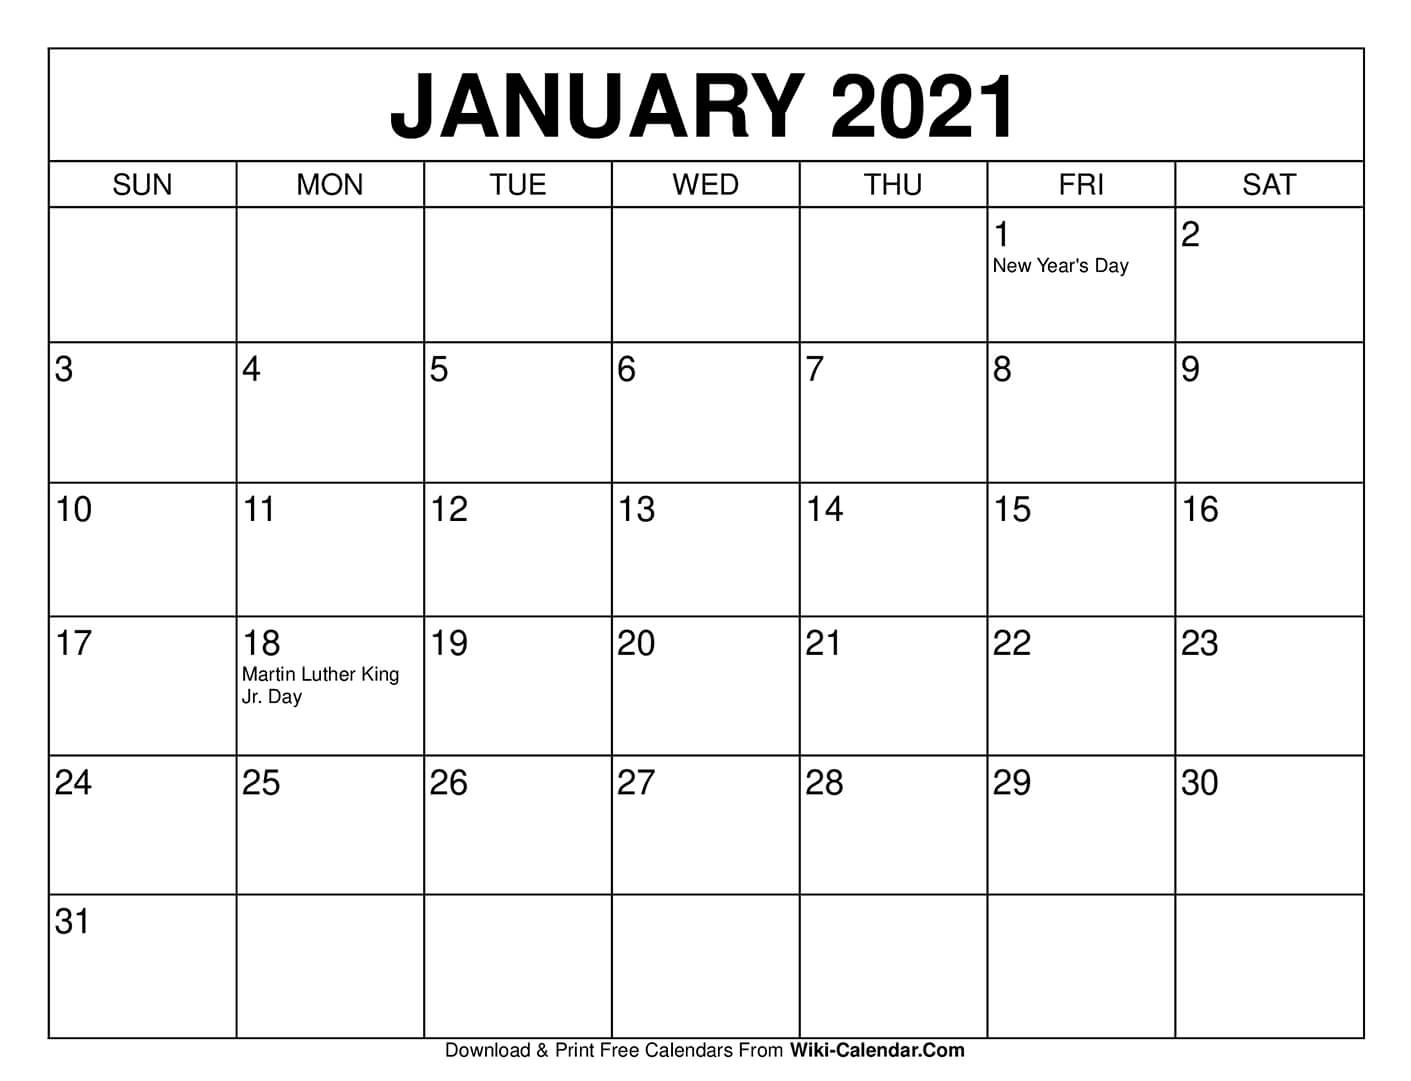 Free Printable January 2021 Calendars with Printfree Calendar 2021 With Date Boxes